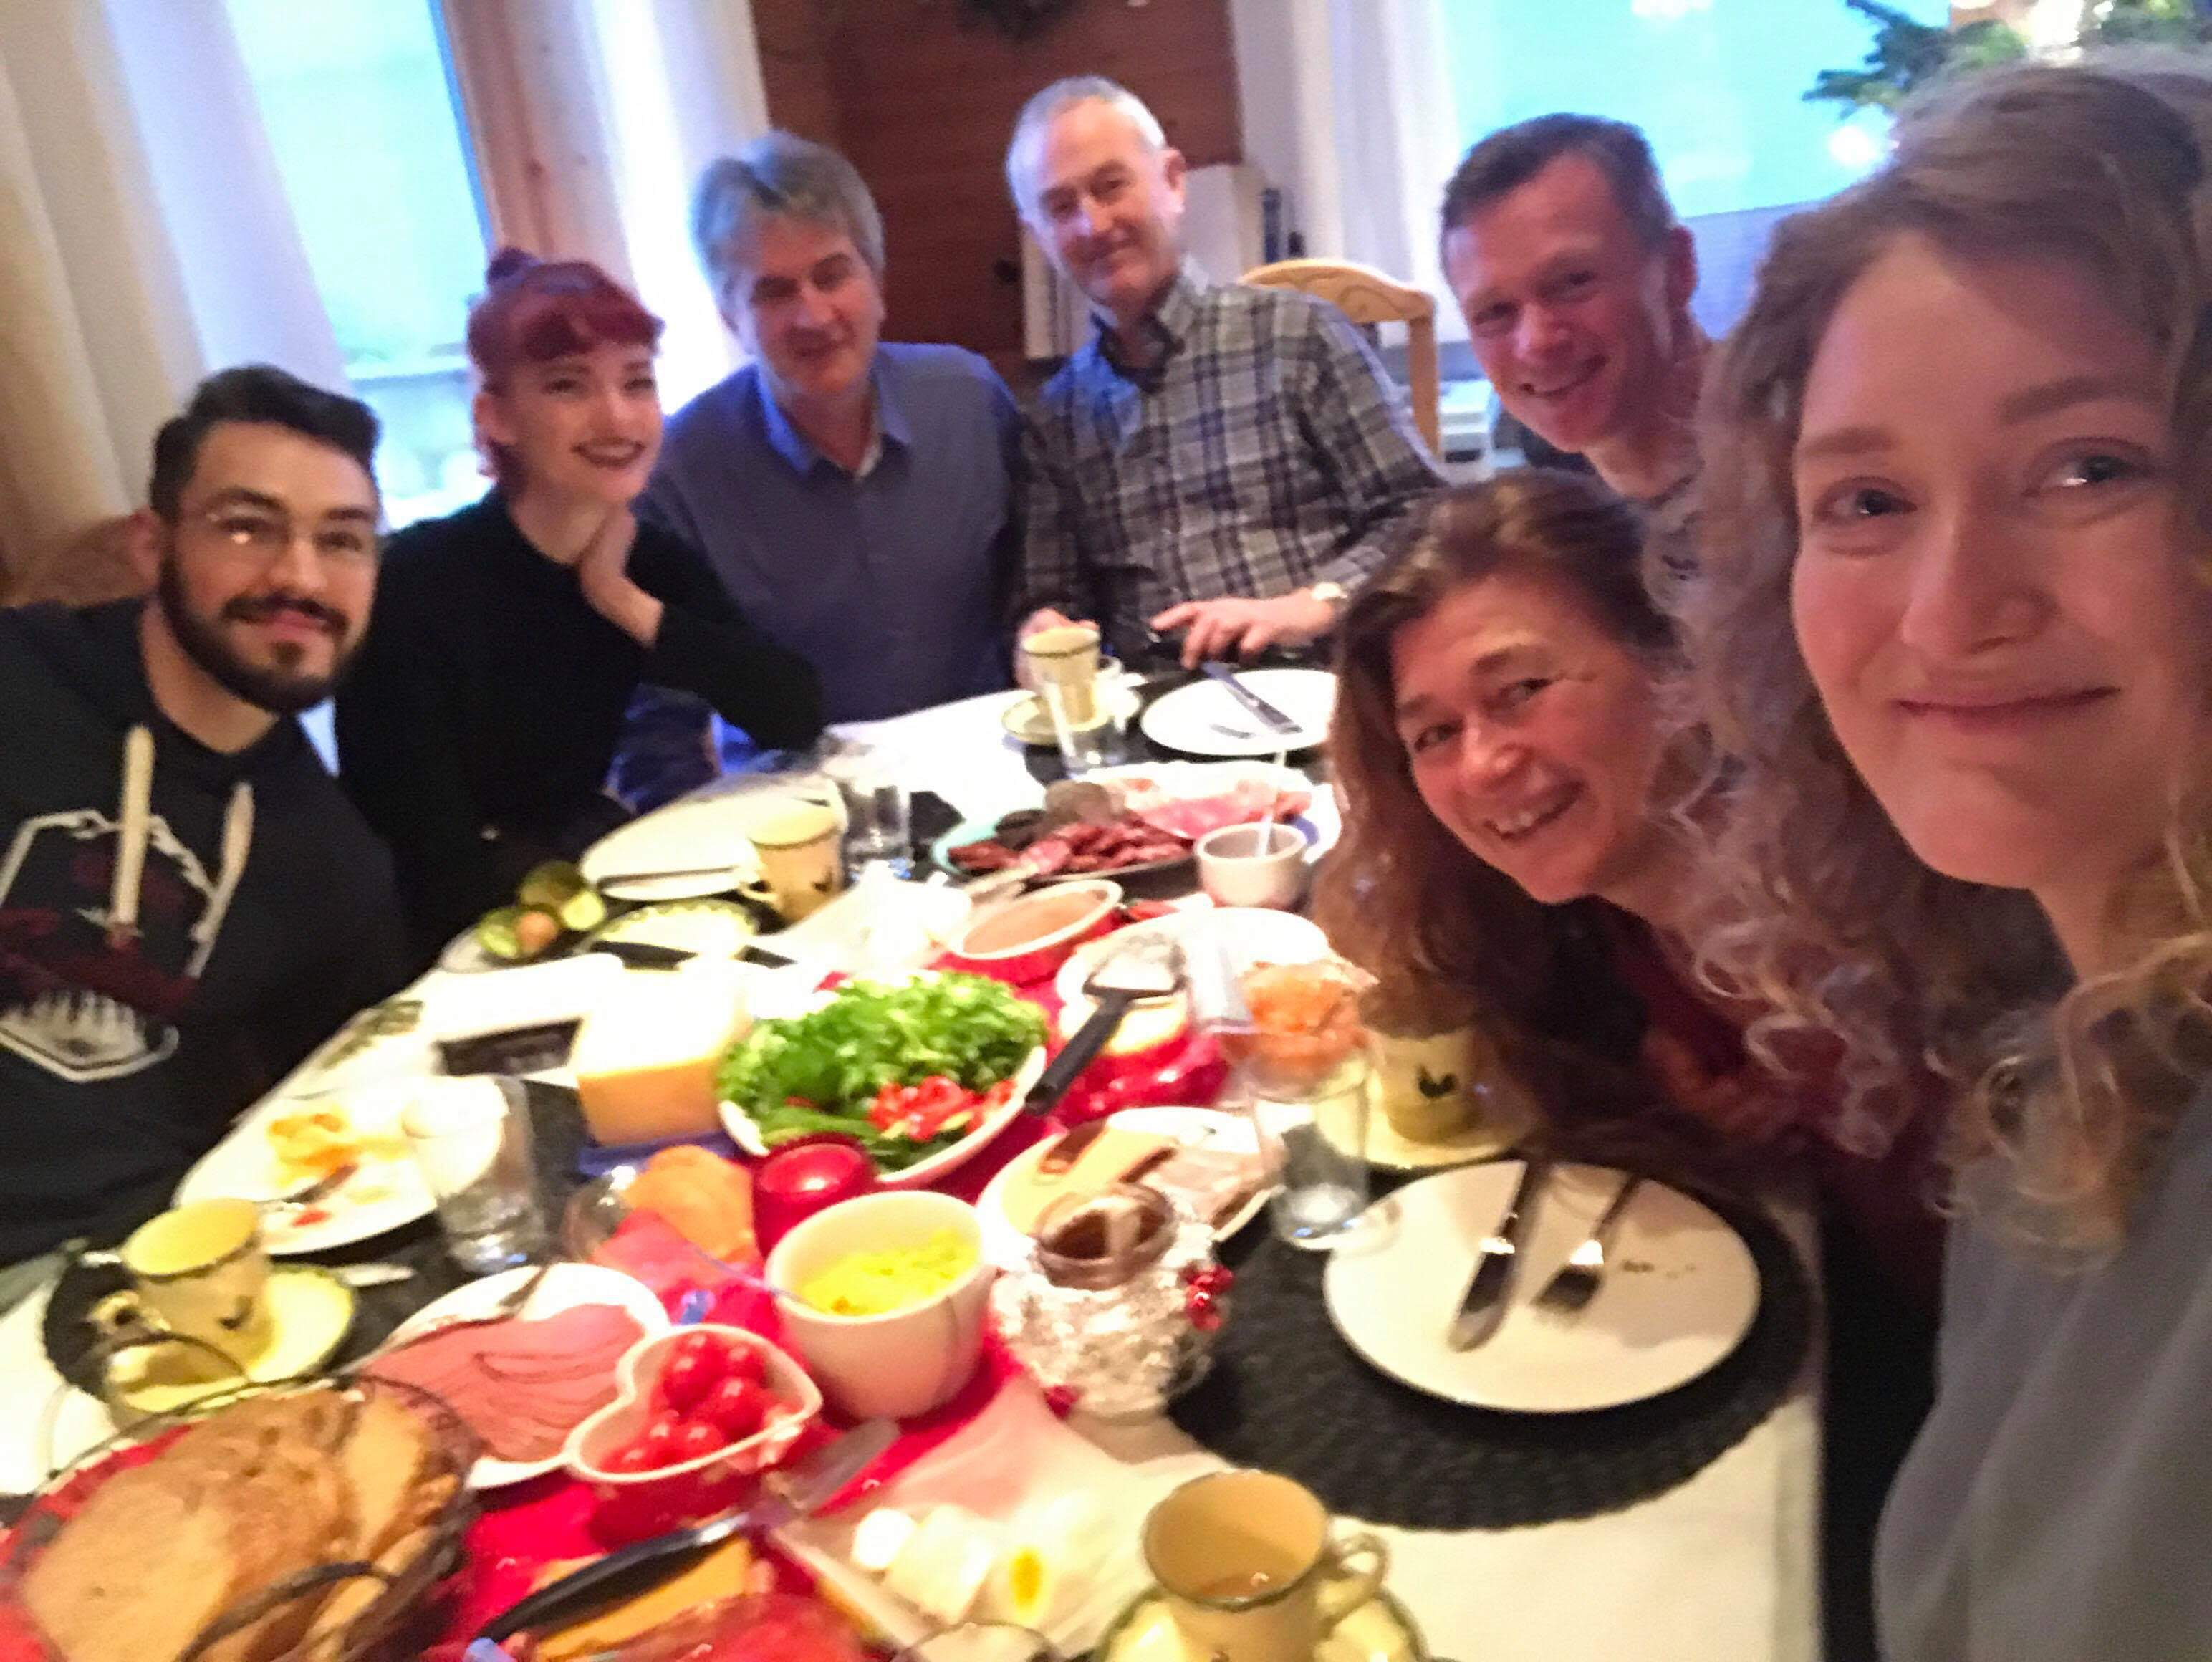 Fish Balls, Brown Cheese, Reindeer & Roast Whale: A Foodie's Time in Vikingland